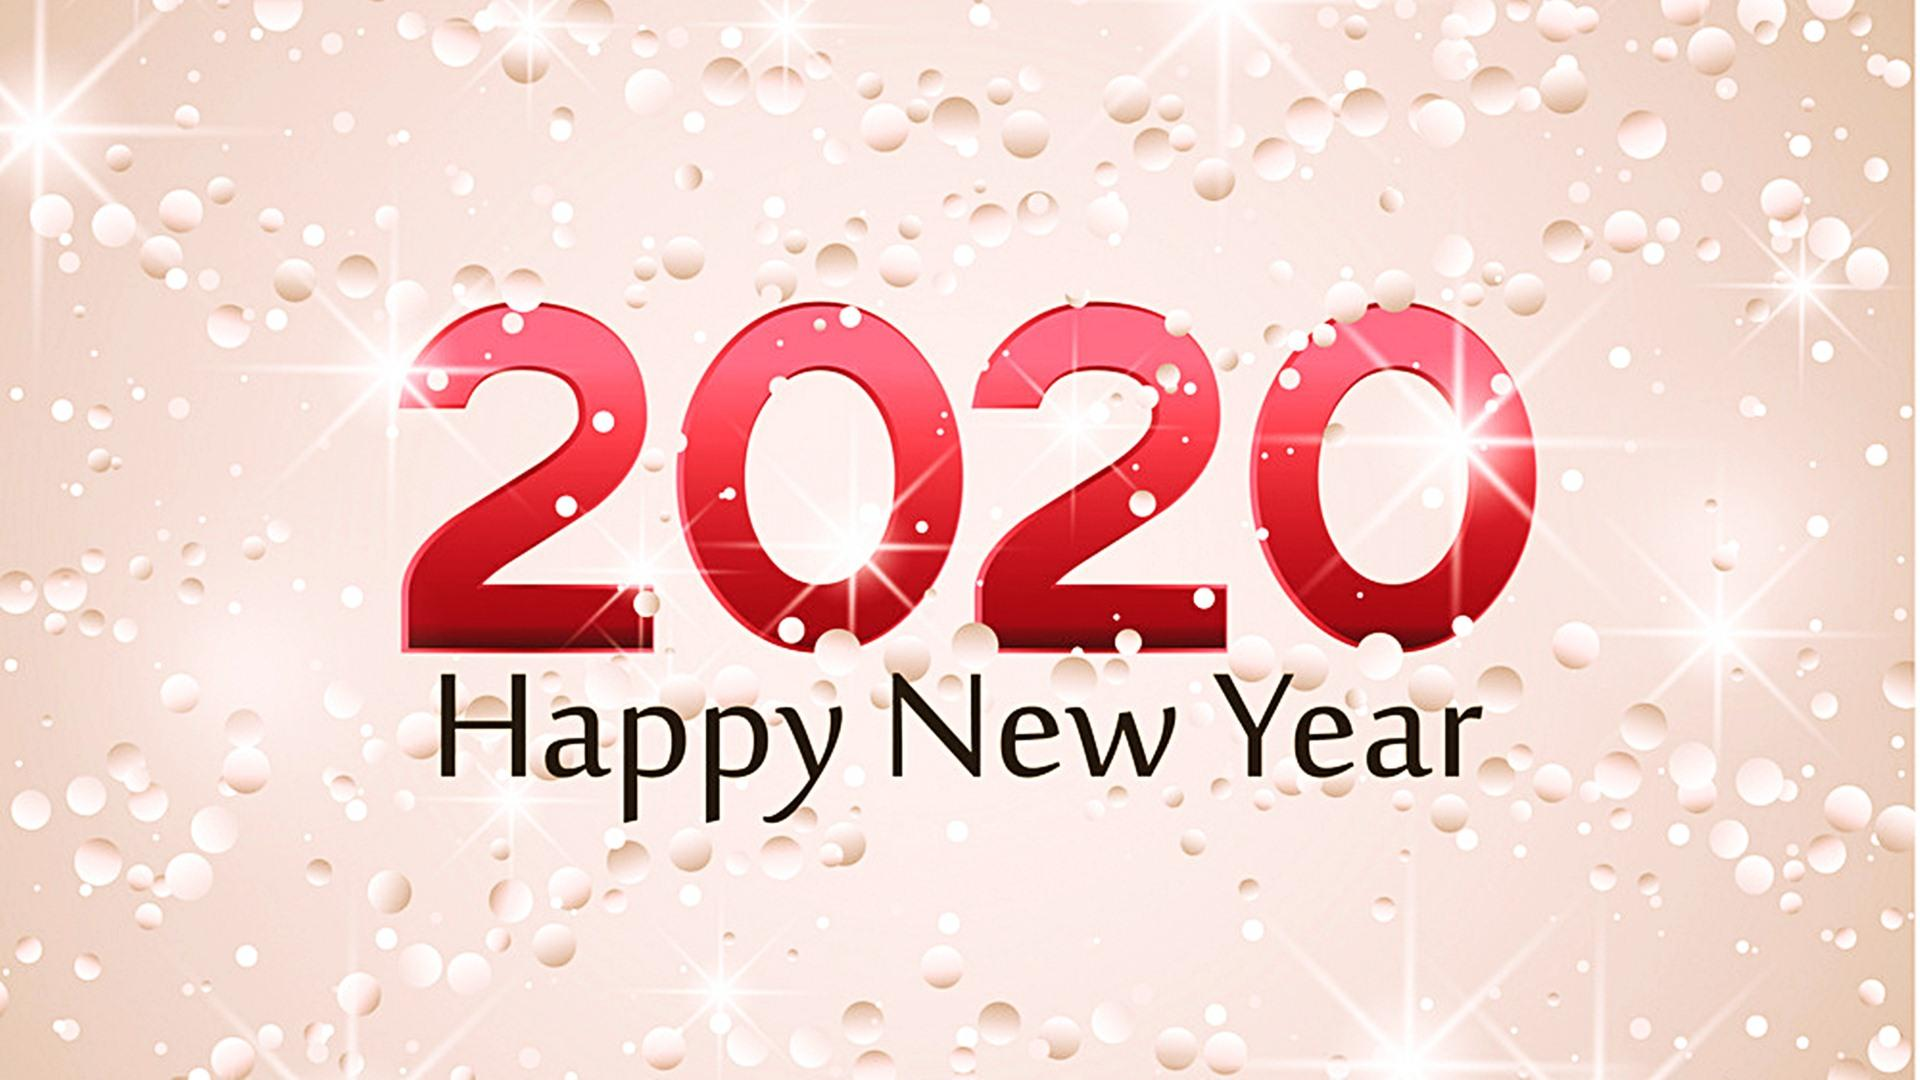 Happy New Year 2020 Wallpapers HD 45554